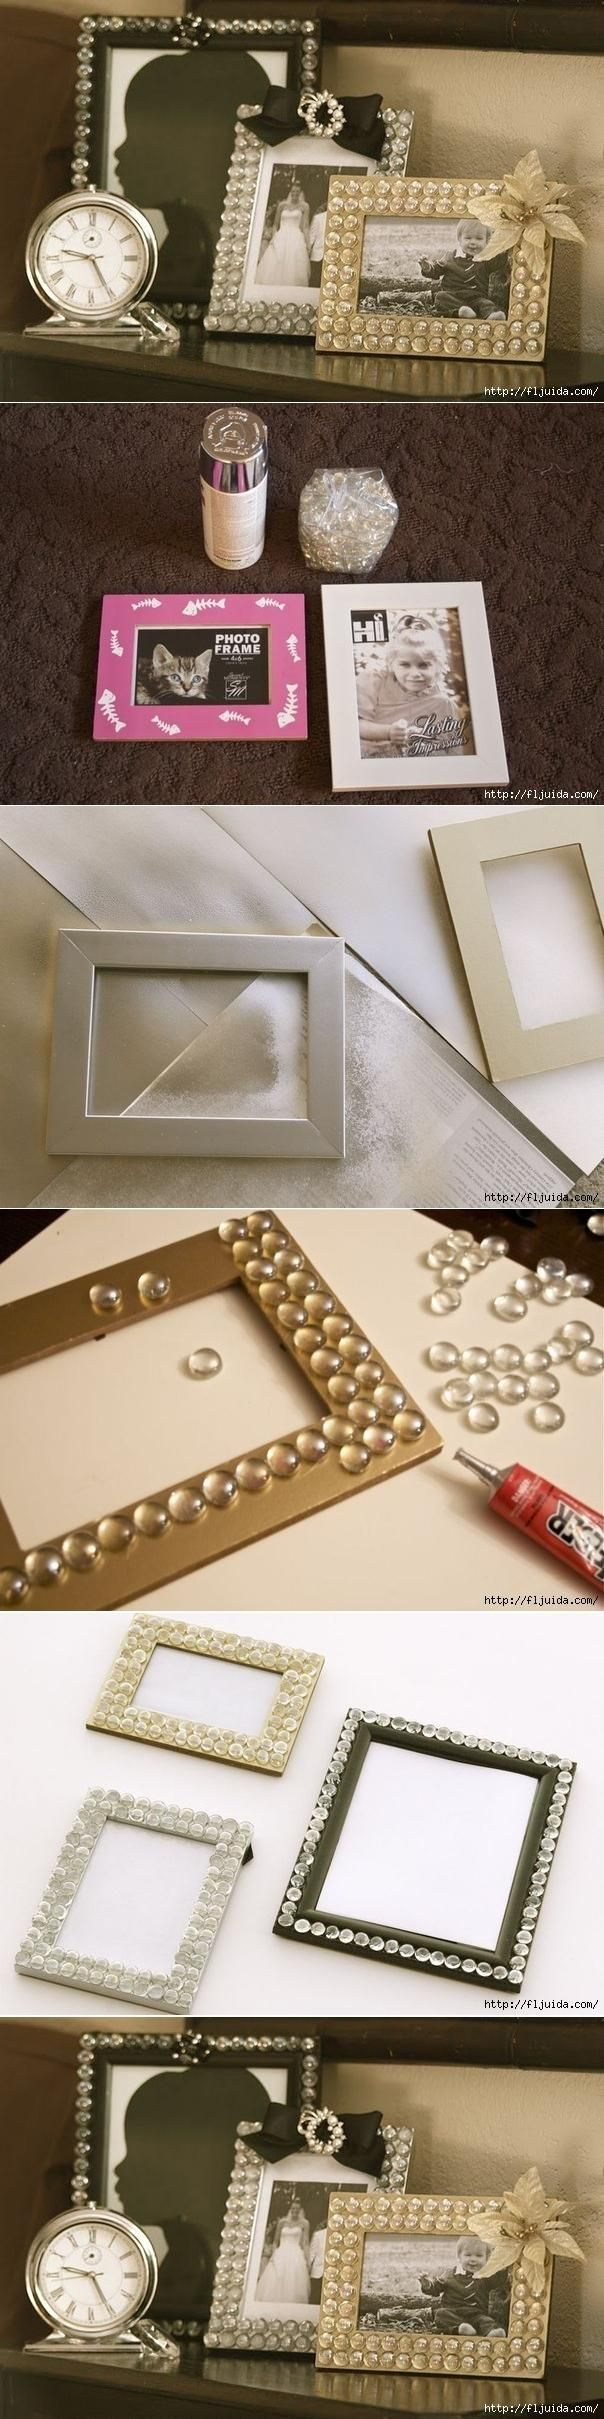 Diy glamorous picture frame with glass gems from the dollar tree diy glamorous picture frame with glass gems from the dollar tree store christmas or mothers jeuxipadfo Image collections